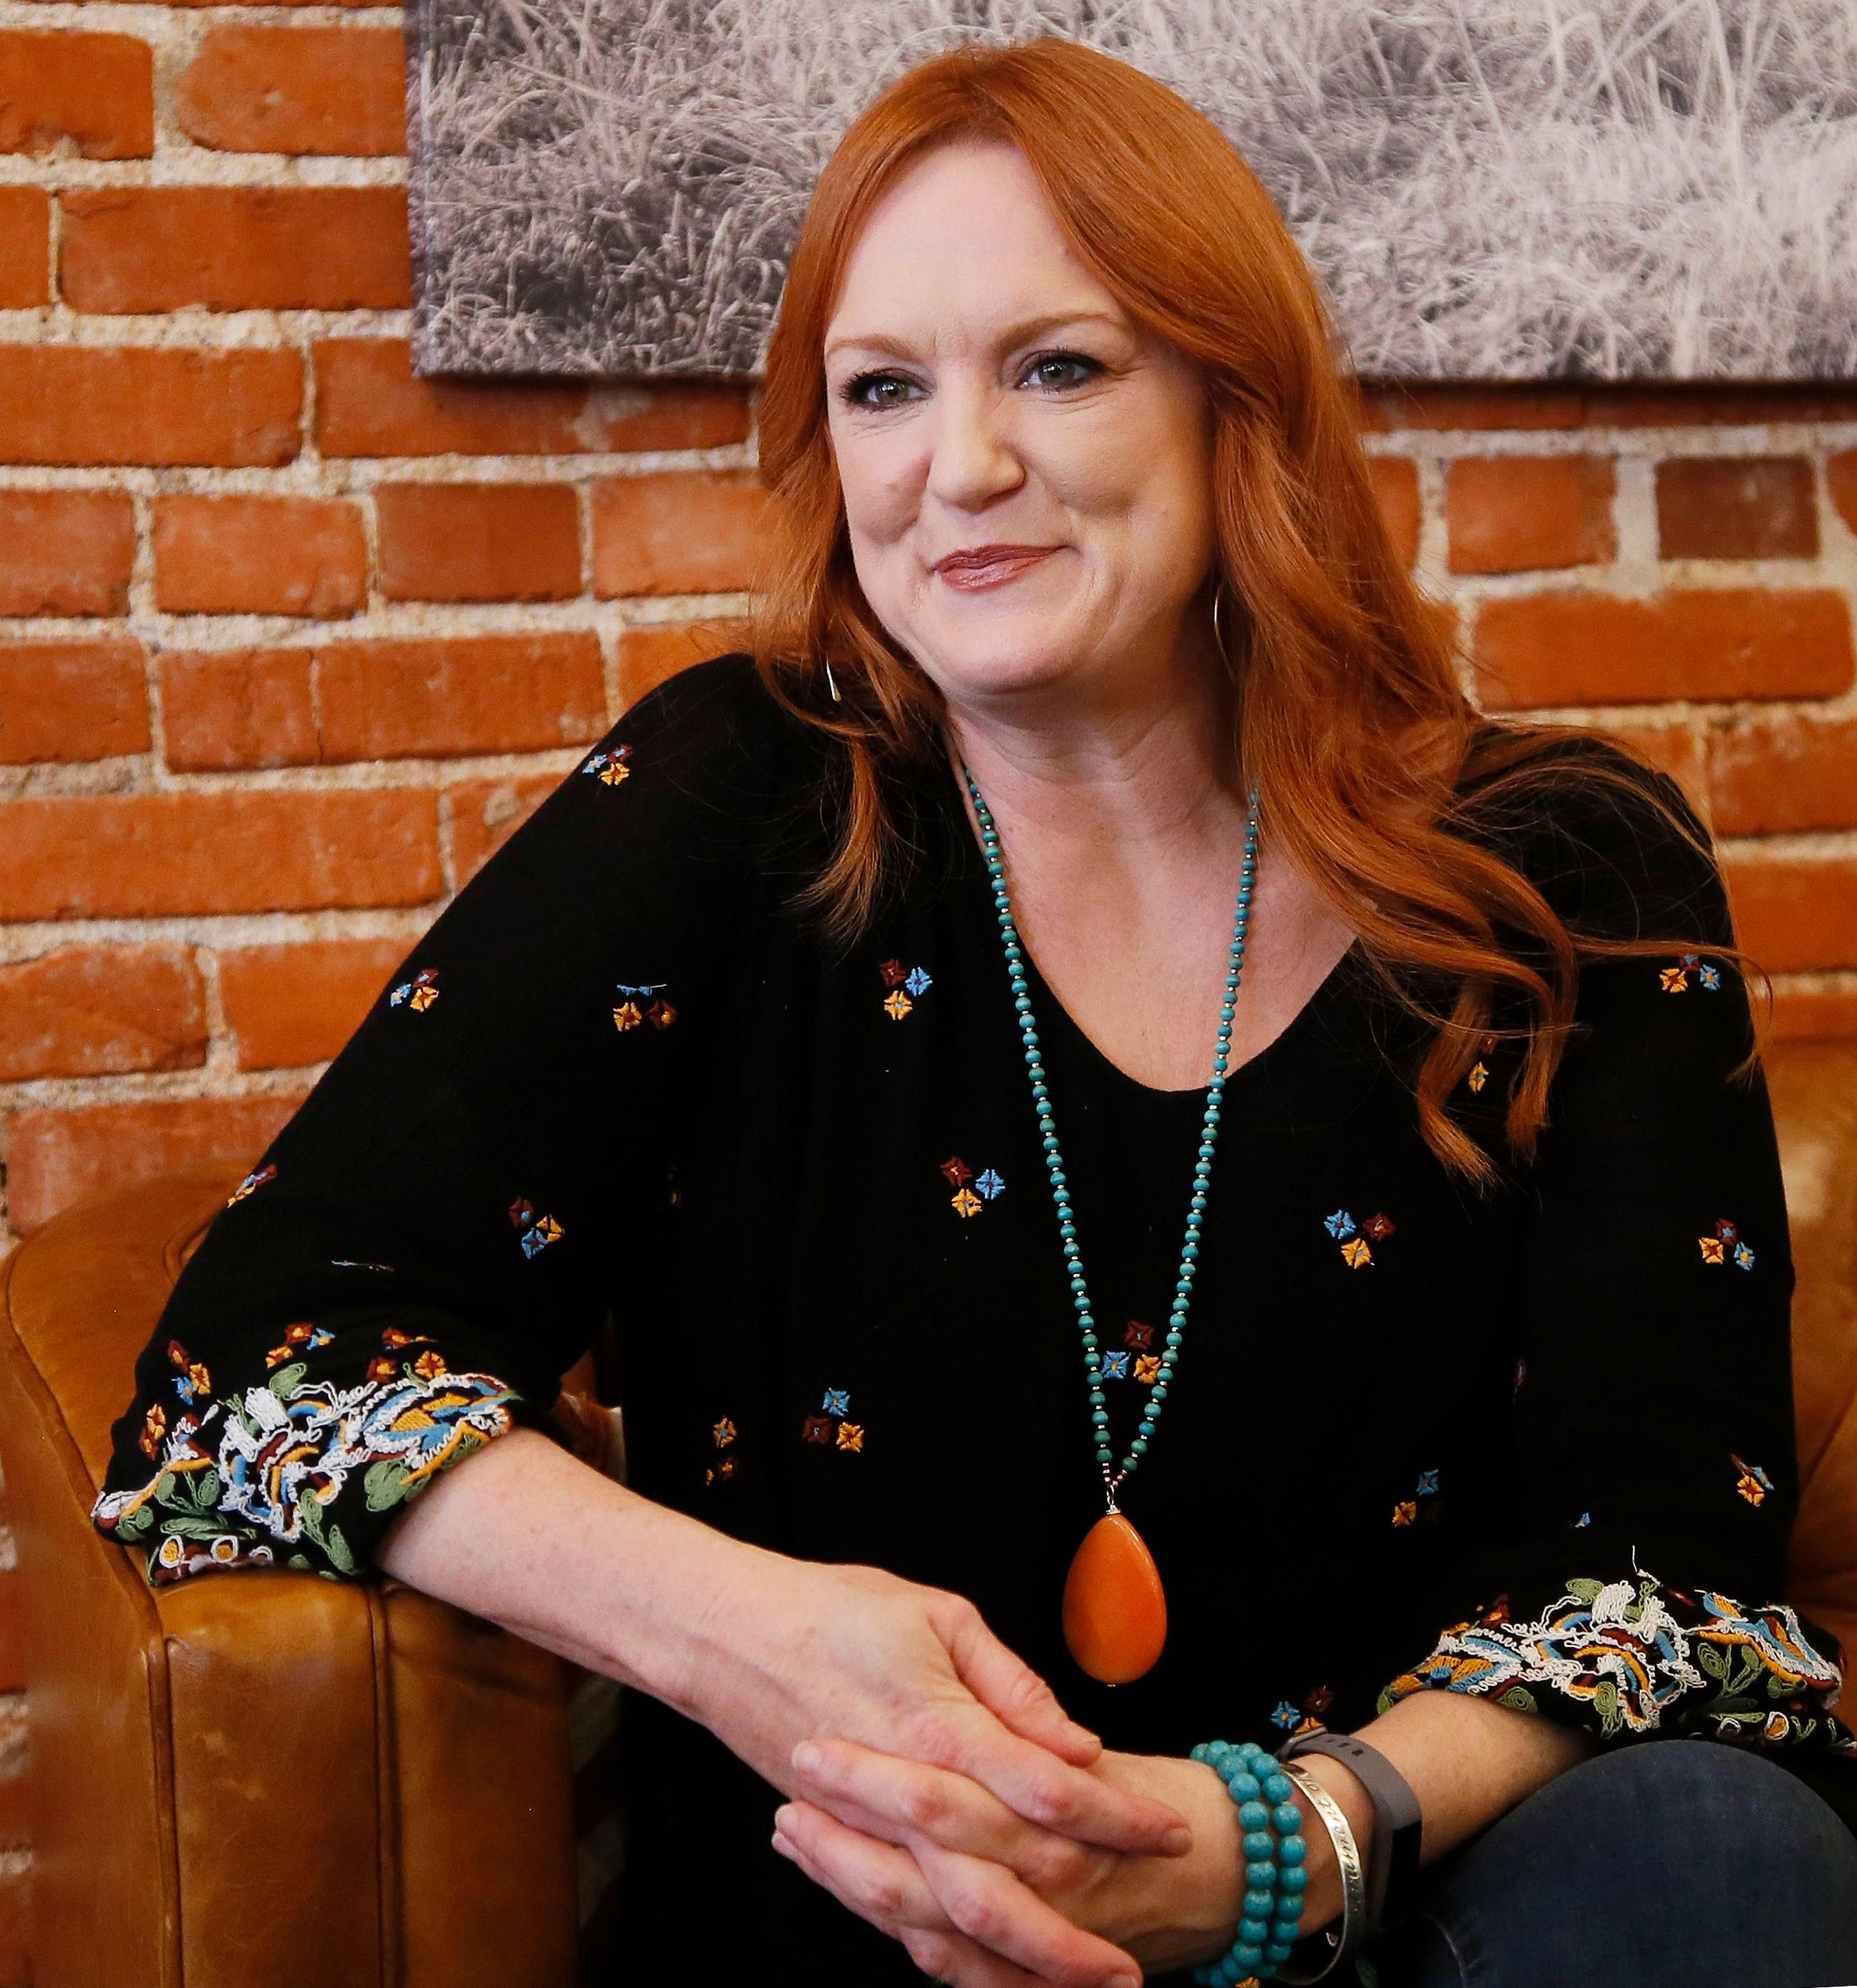 Ree Drummond Says The Next Pioneer Woman Episode Will Be A